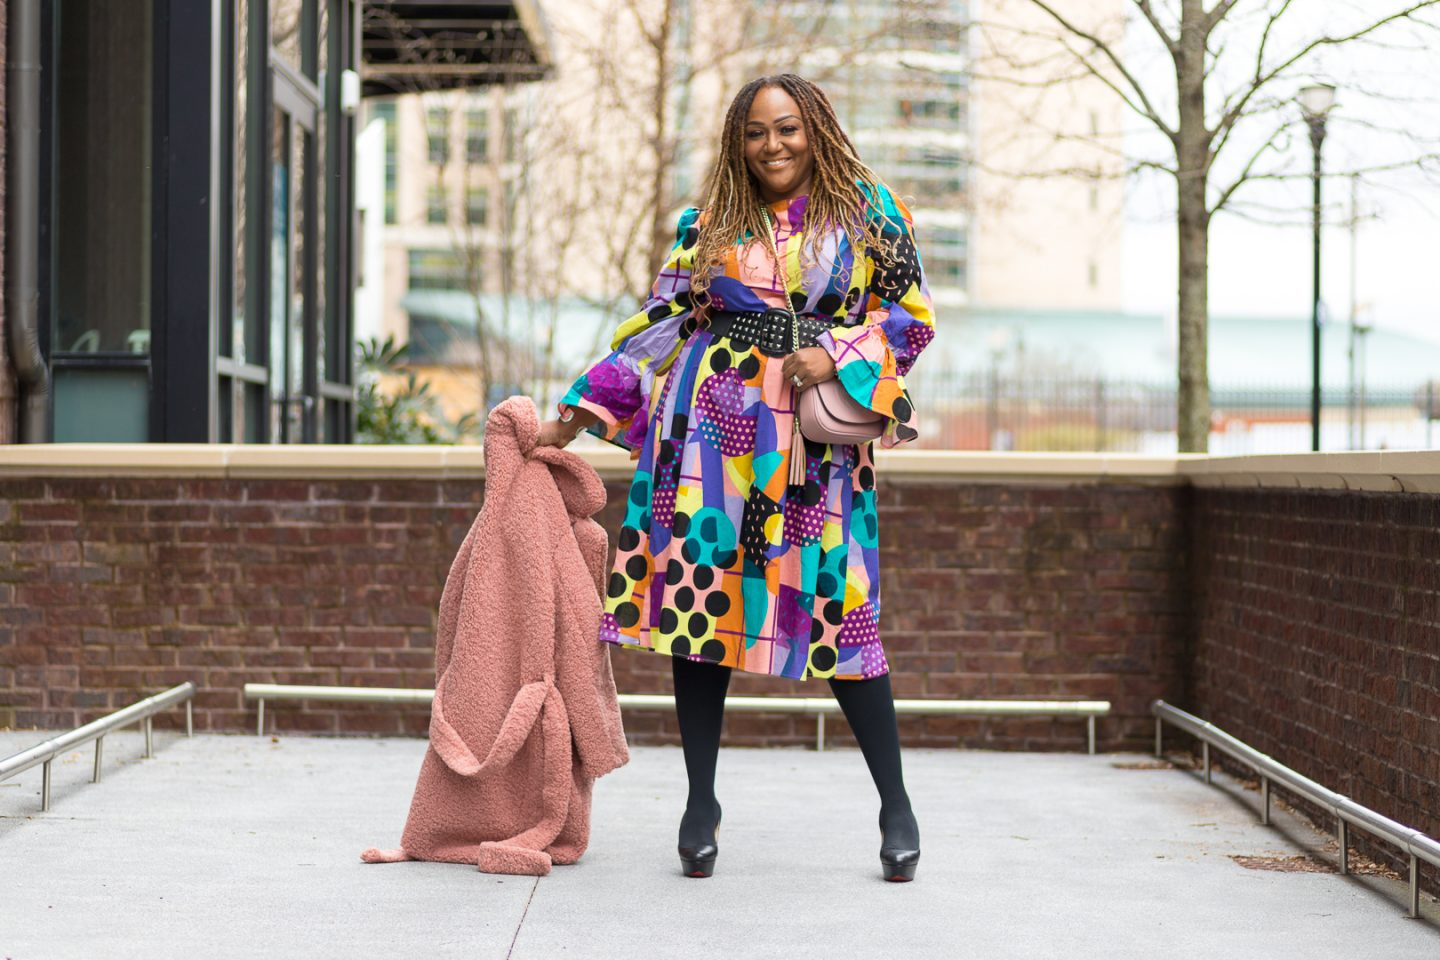 Nikki Free wearing colorful print dress from SHEIN holding Teddy Coat